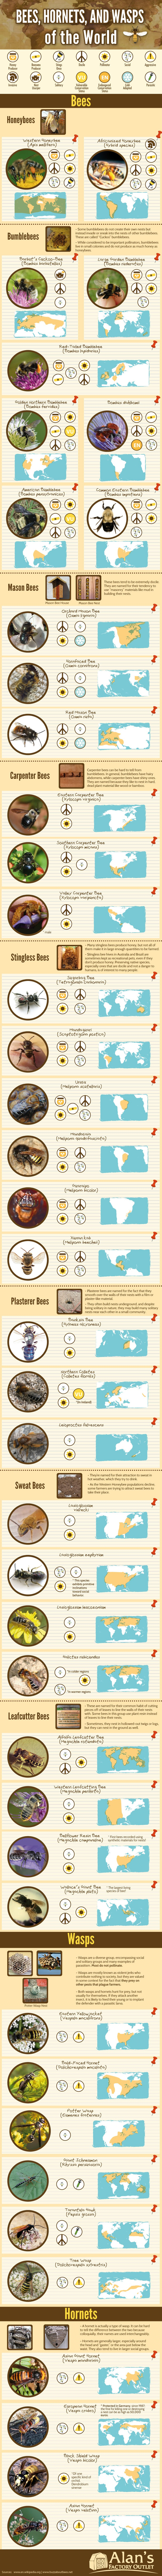 Bees, Hornets and Wasps of the World #infographic